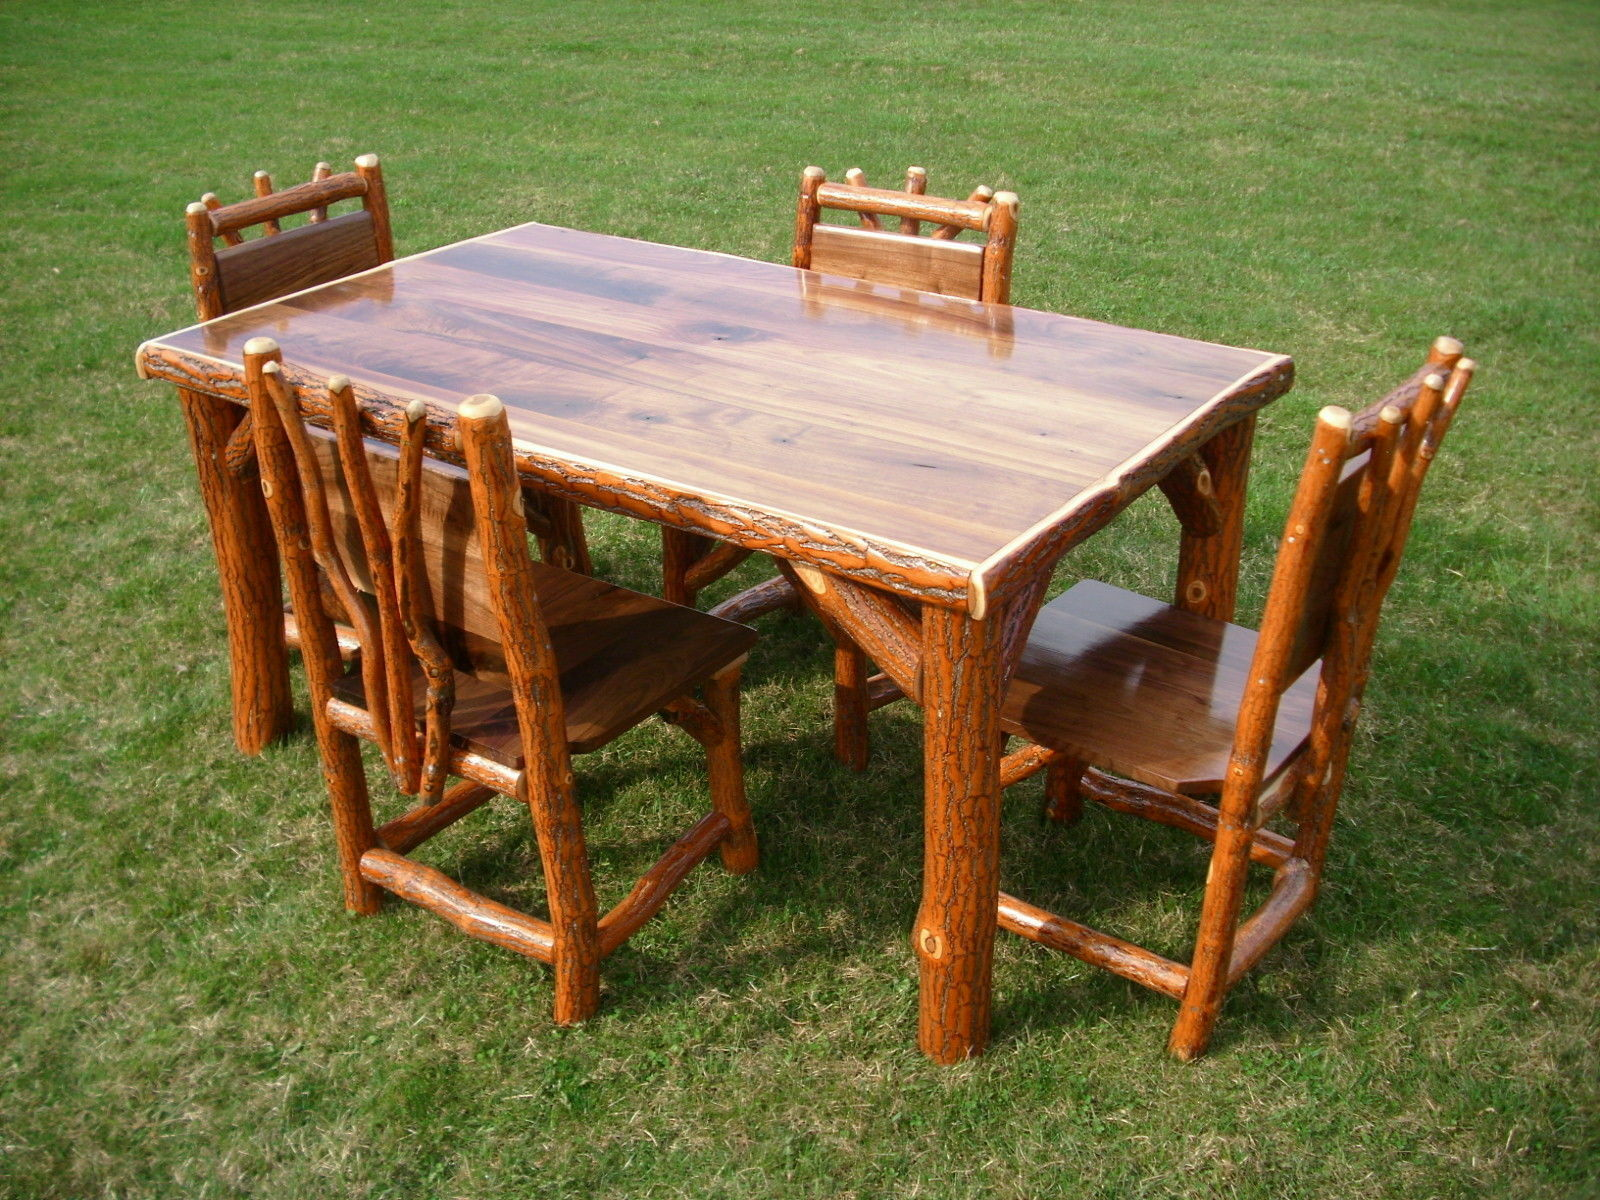 How to Build a Rustic Kitchen Table | eBay